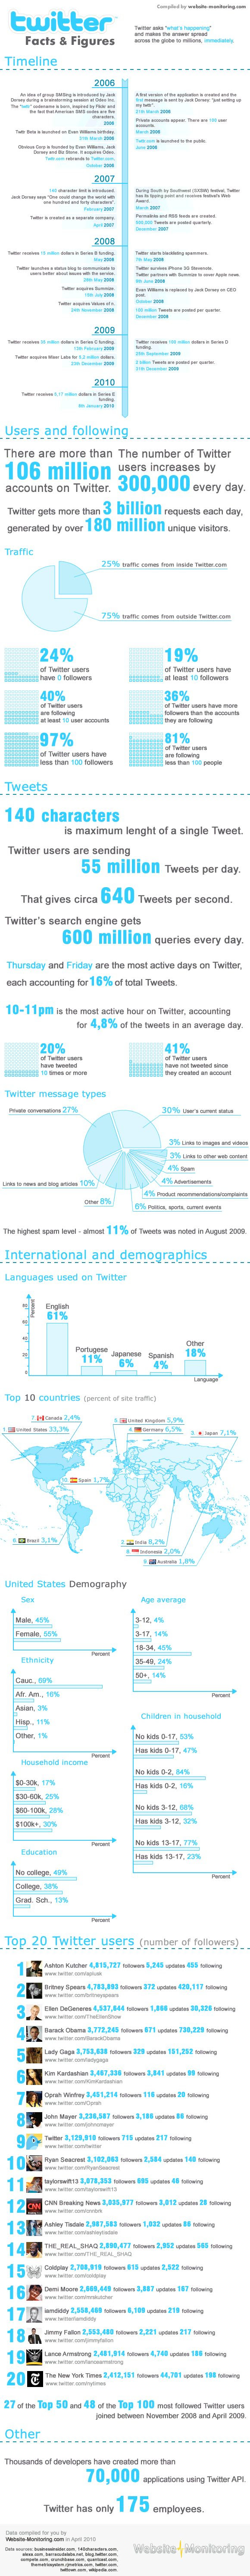 Twitter Facts & Figures